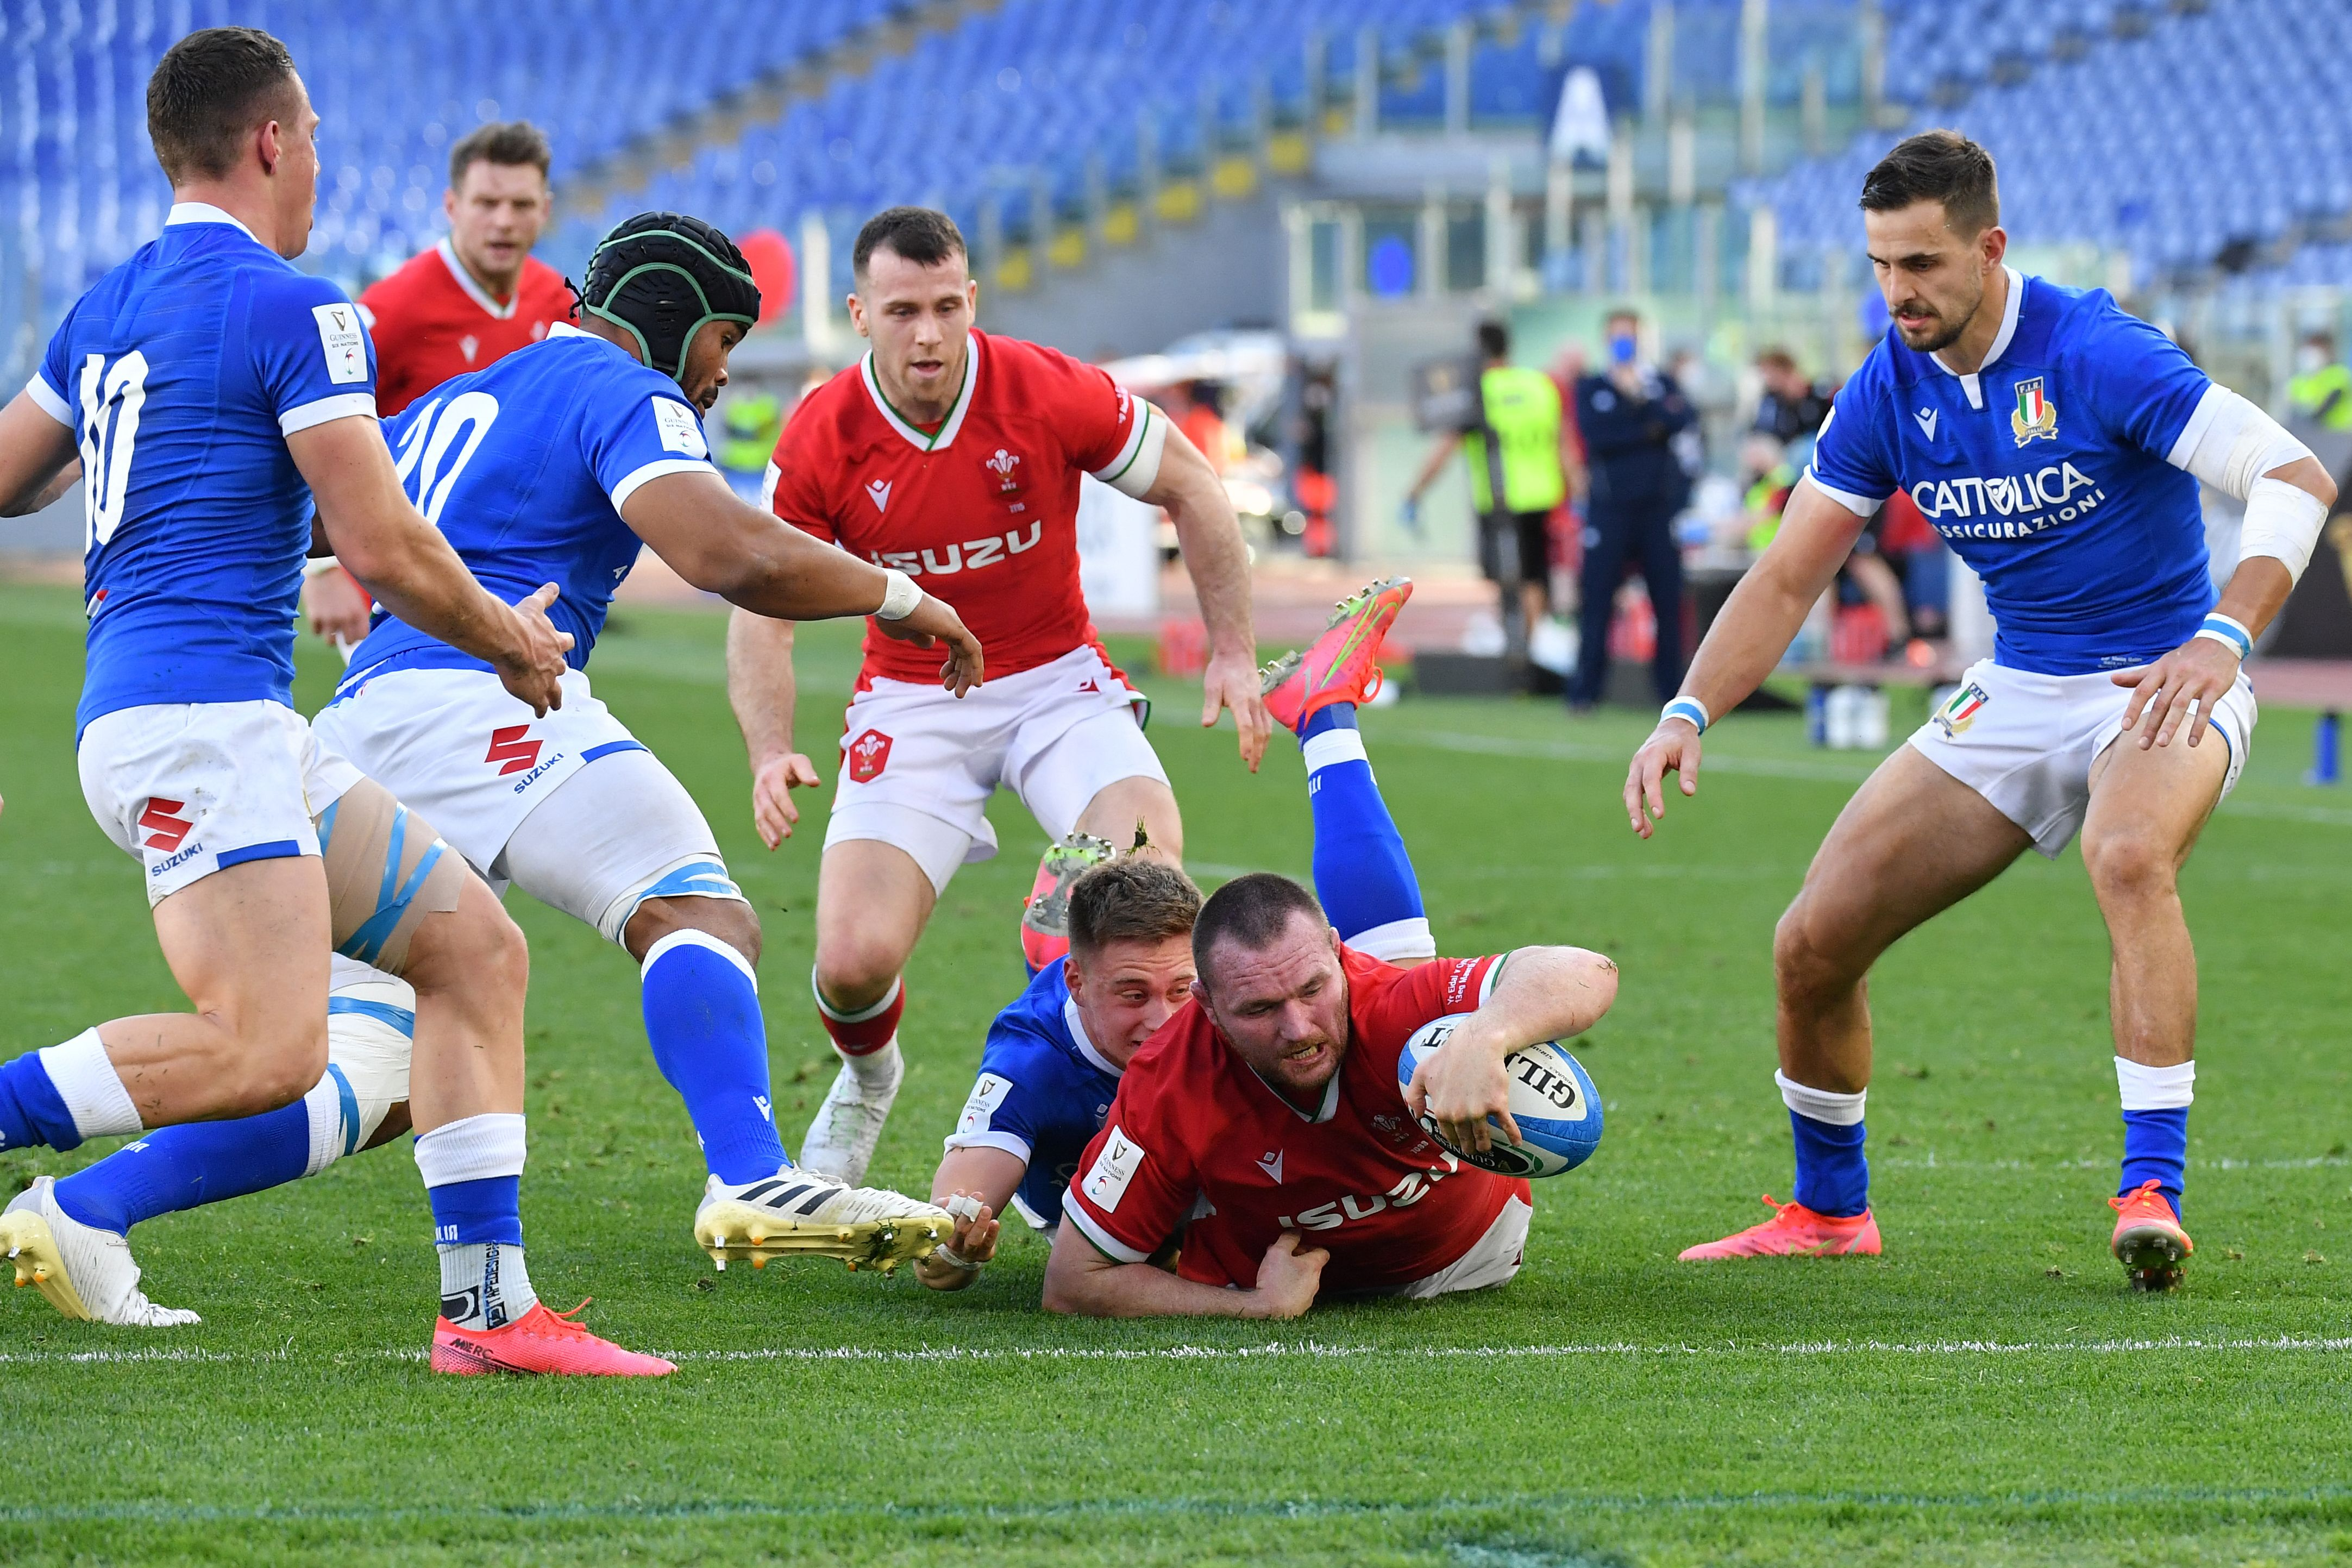 Double for Owens as Wales brush Italy aside to close in on a Grand Slam